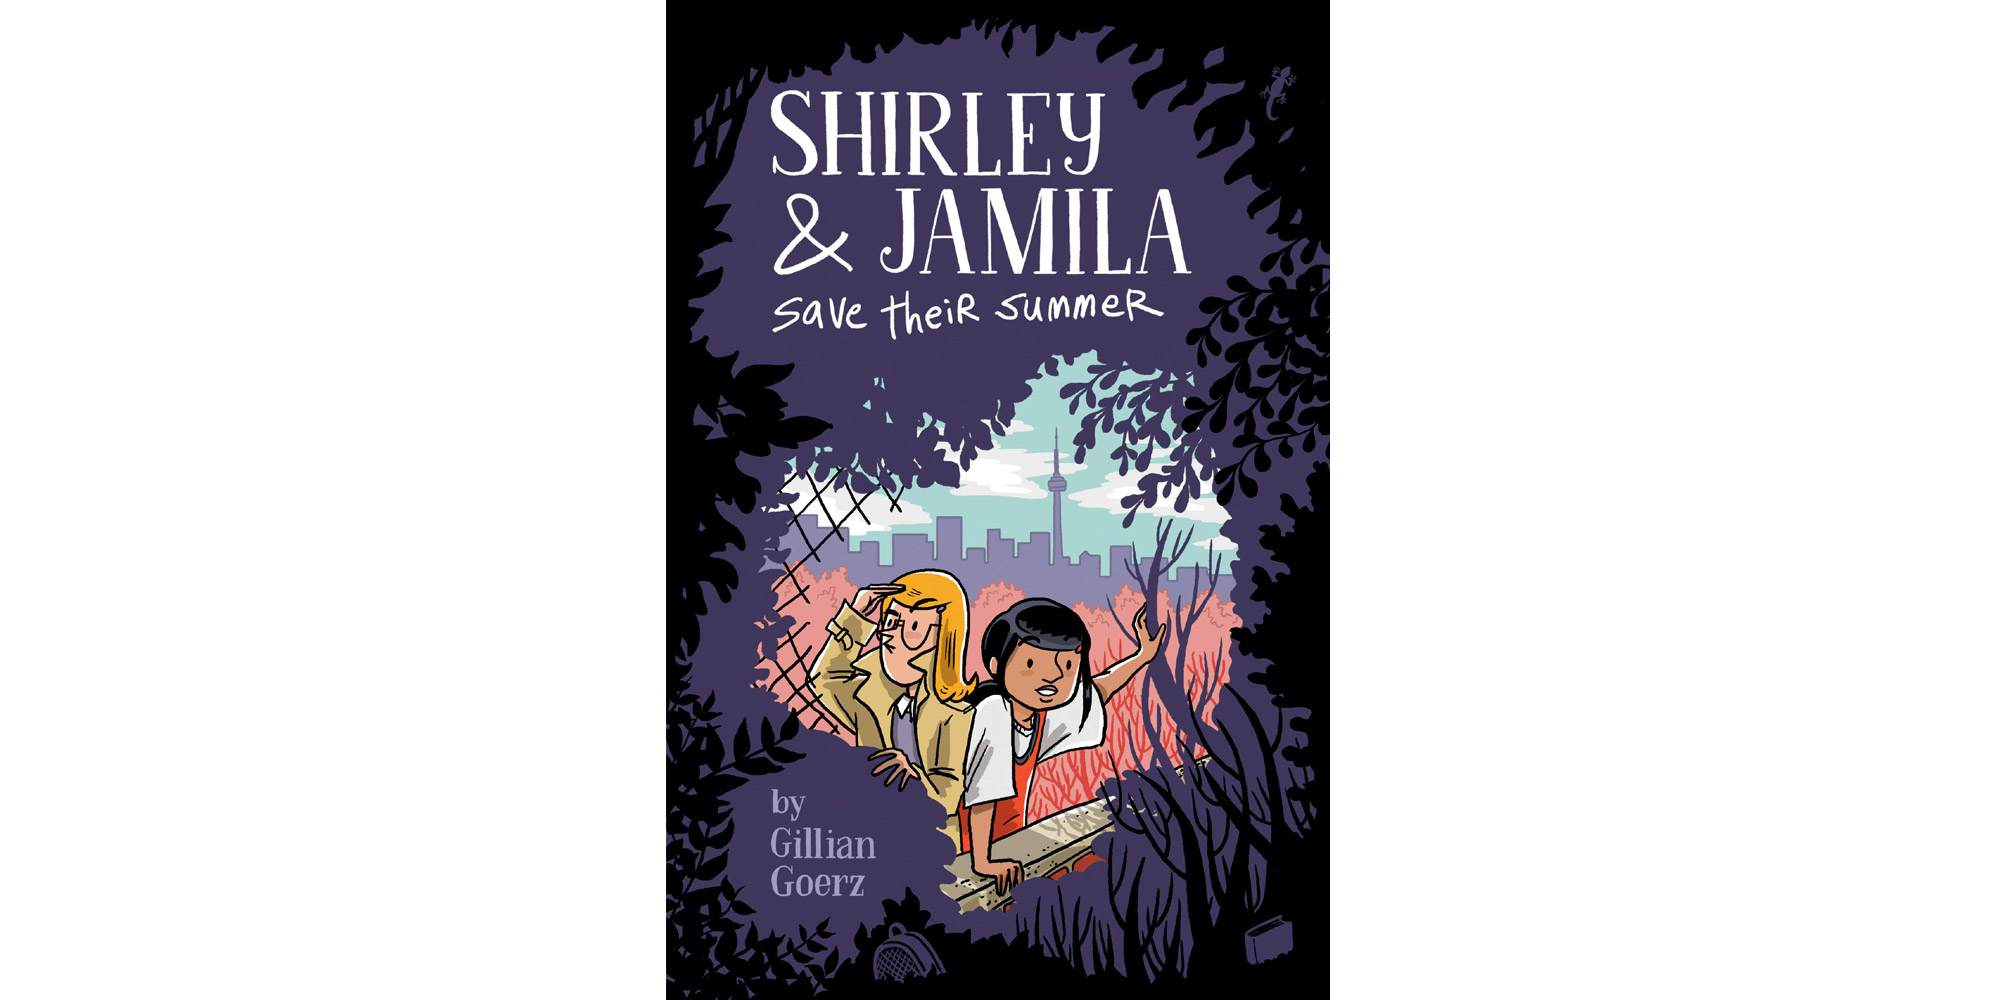 Shirley & Jamila Save Their Summer